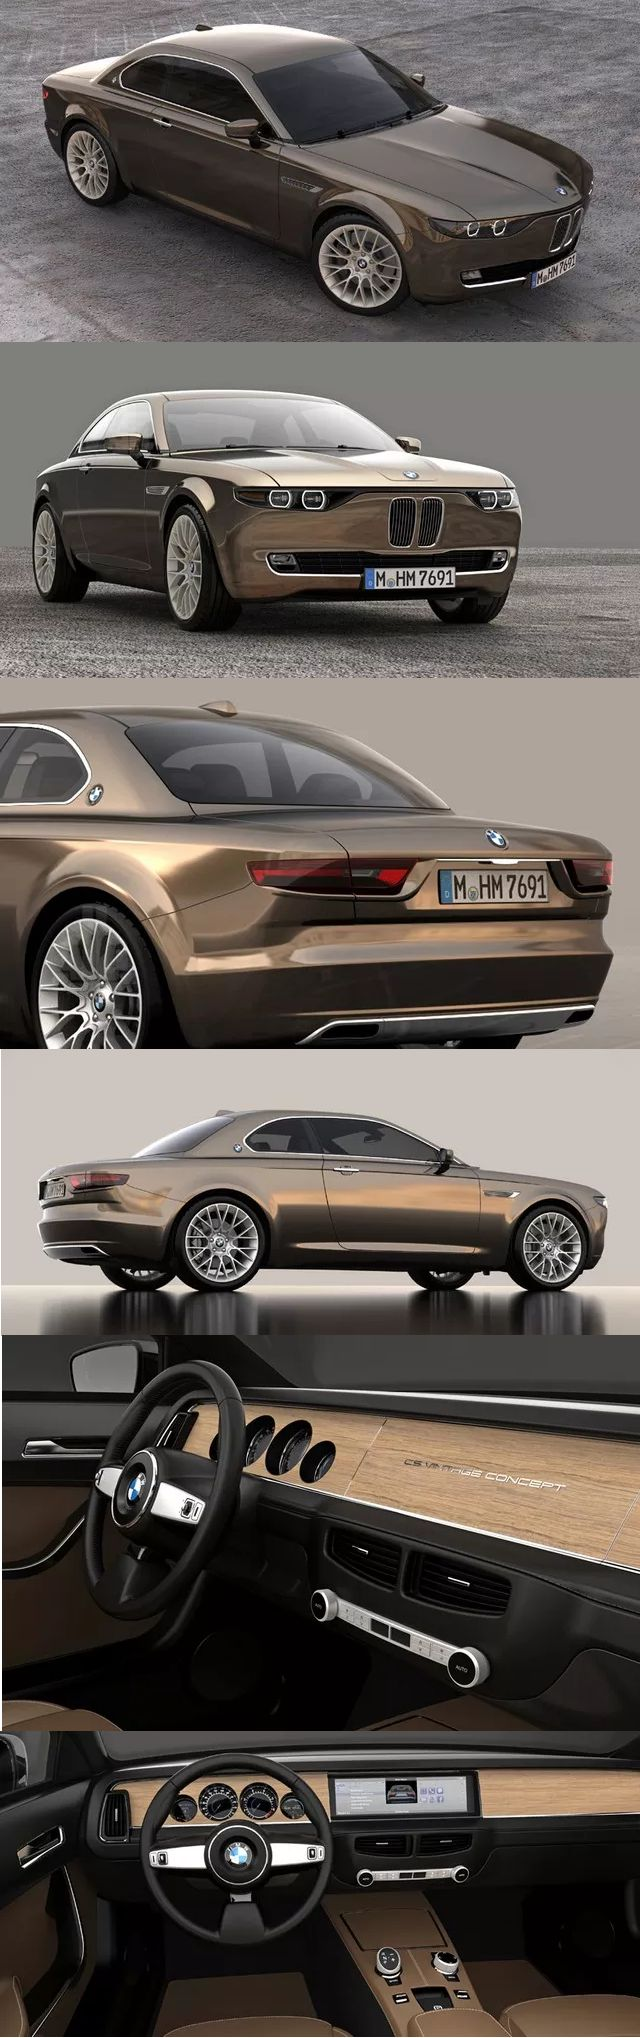 A vintage BMW concept car... I love the almost muscle-y feel to it!